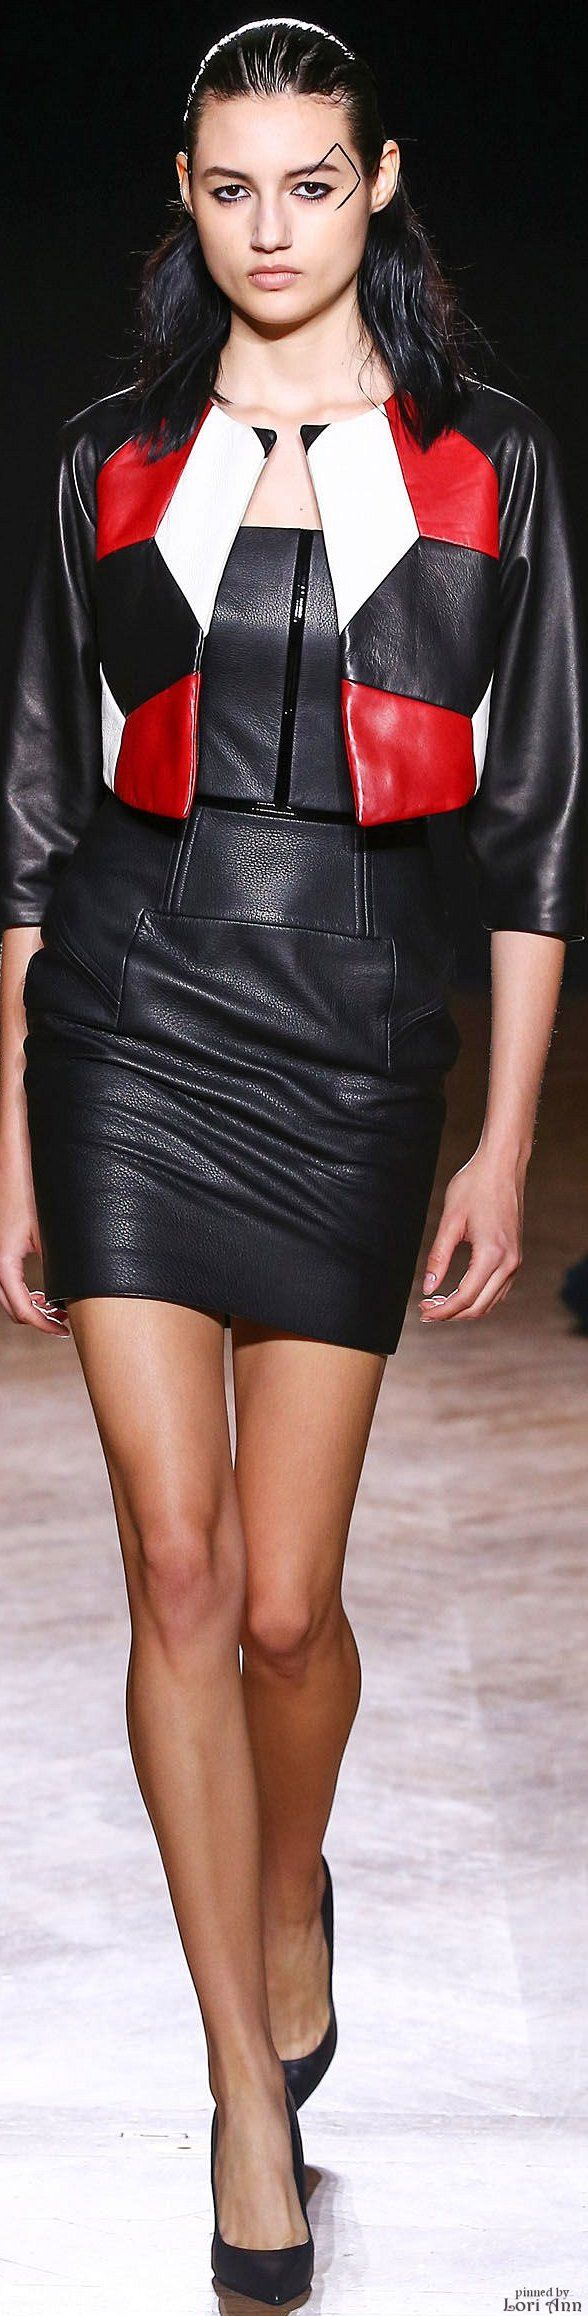 Didit Hediprasetyo ~ Couture Black Leather Mini Dress + Cropped Color-block Jacket,Fall 2015